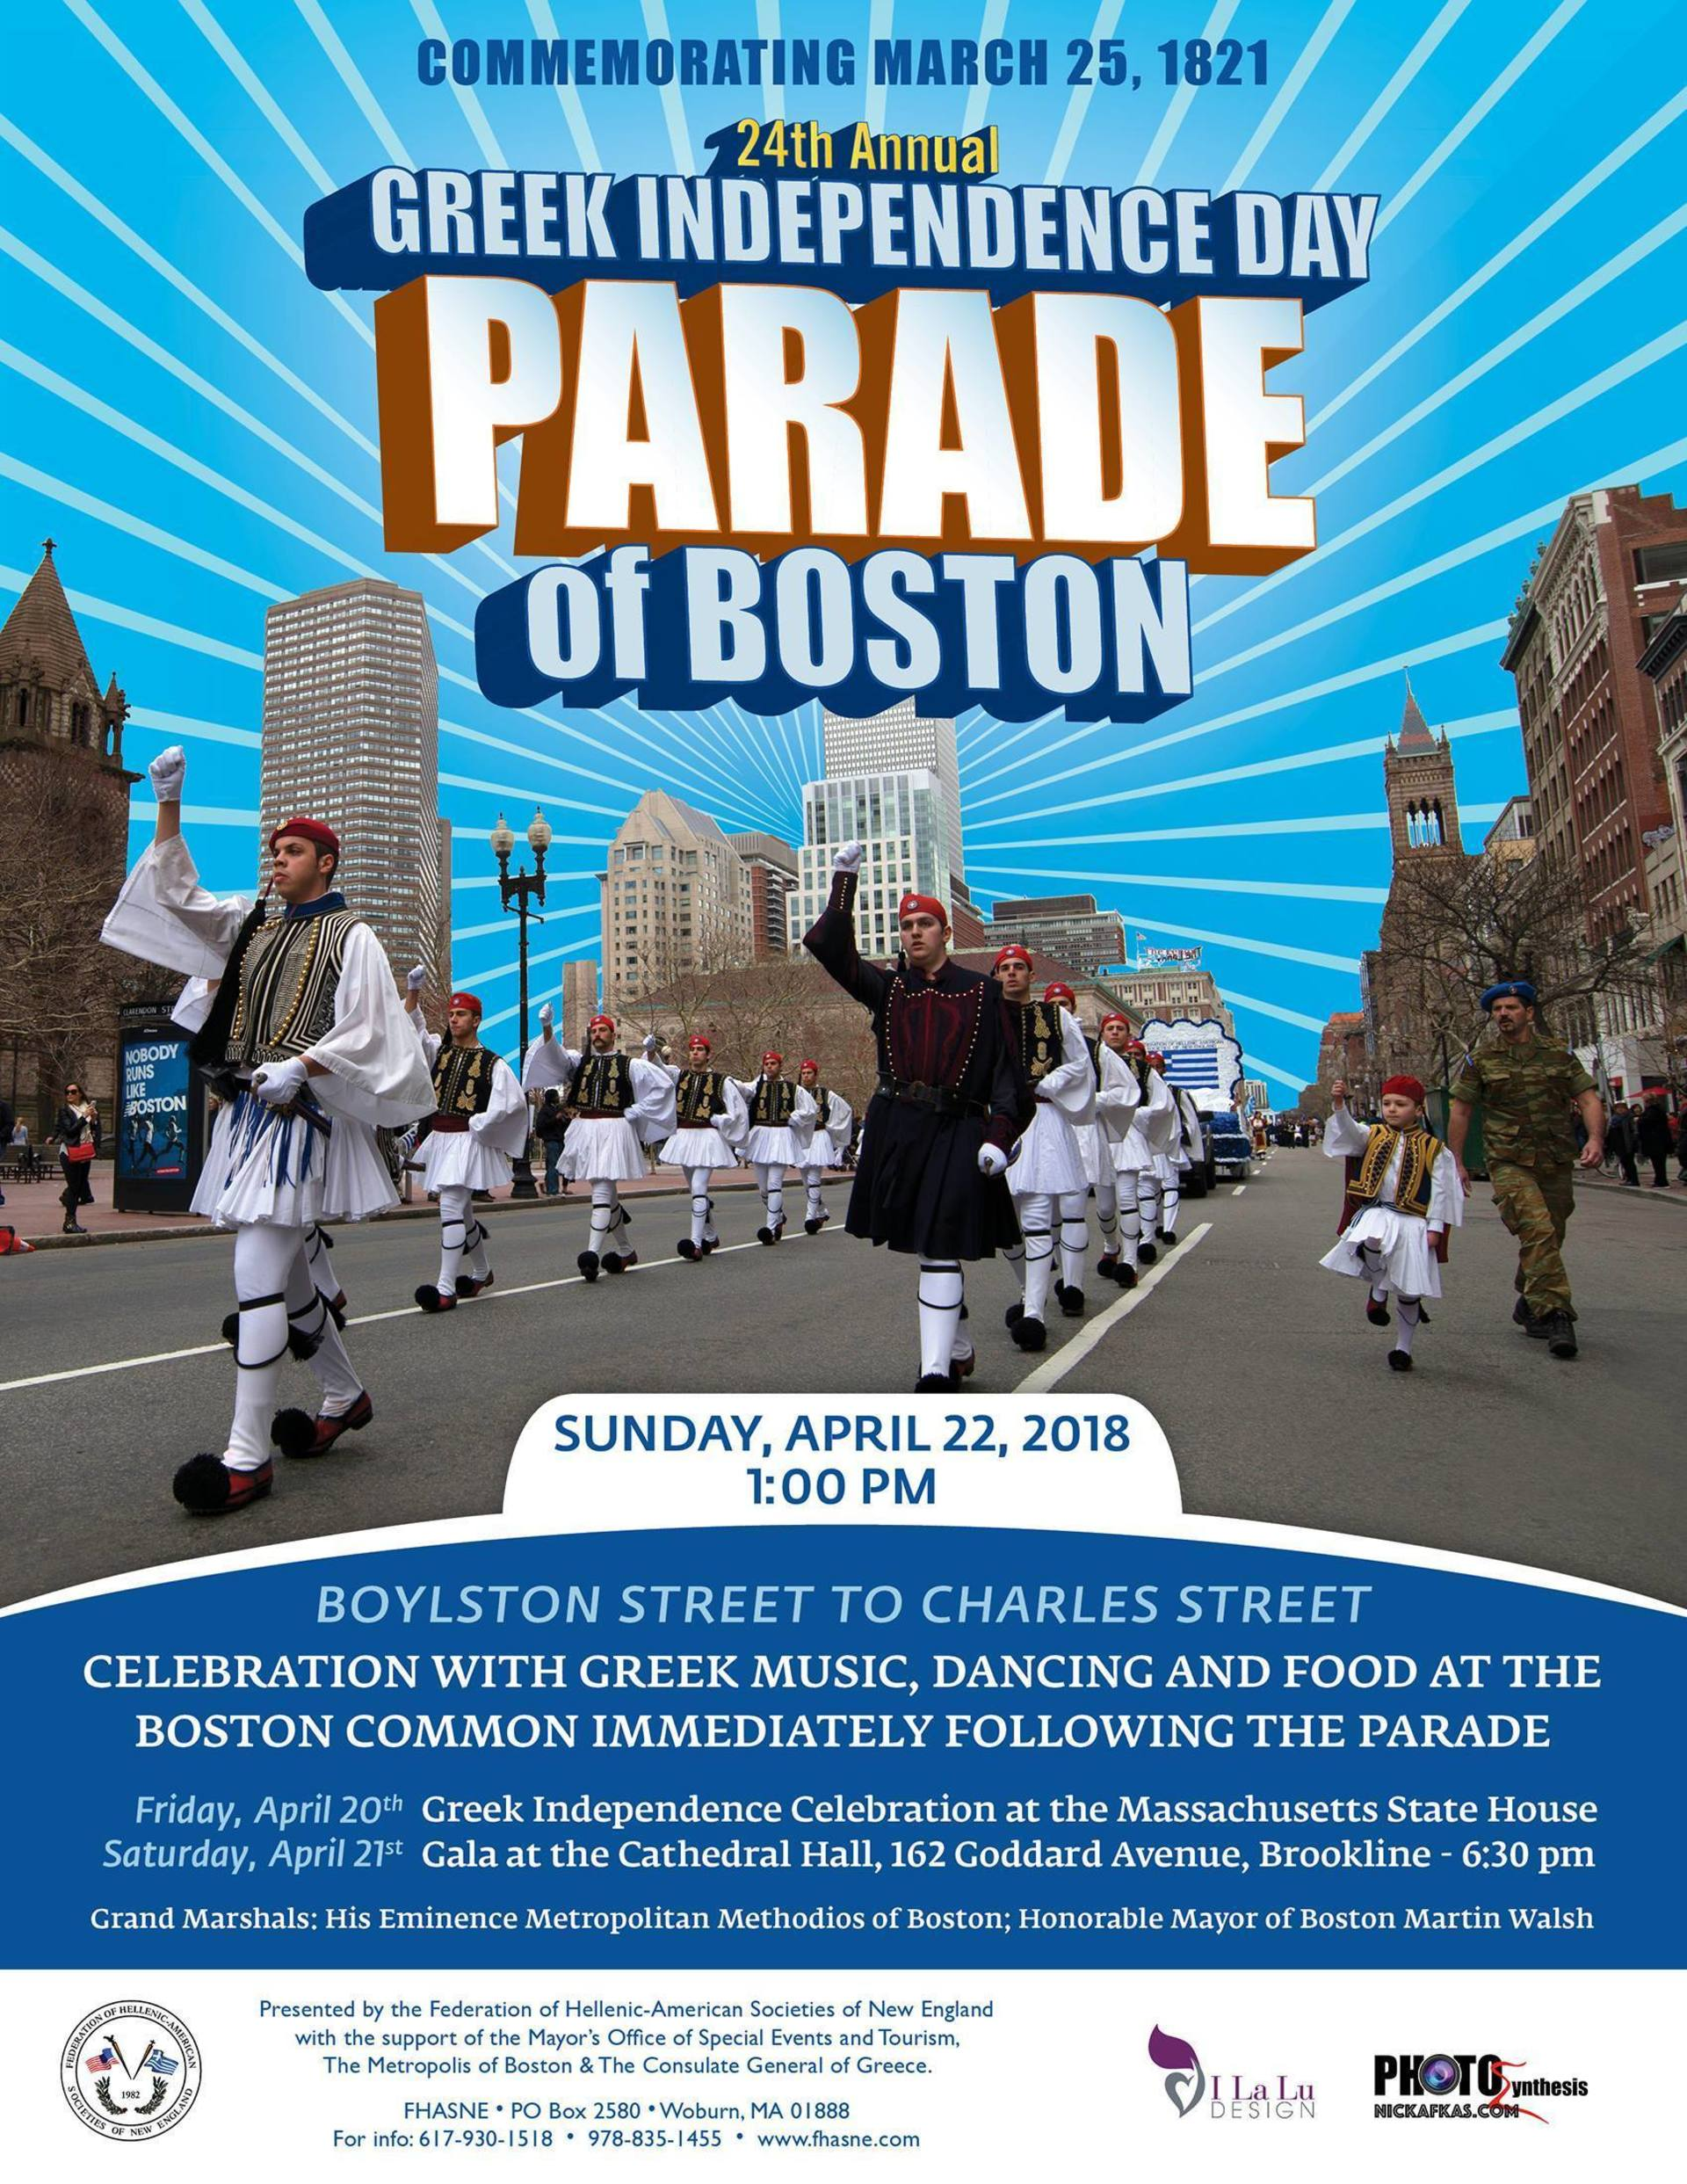 24th Annual Greek Independence Day Parade of Boston